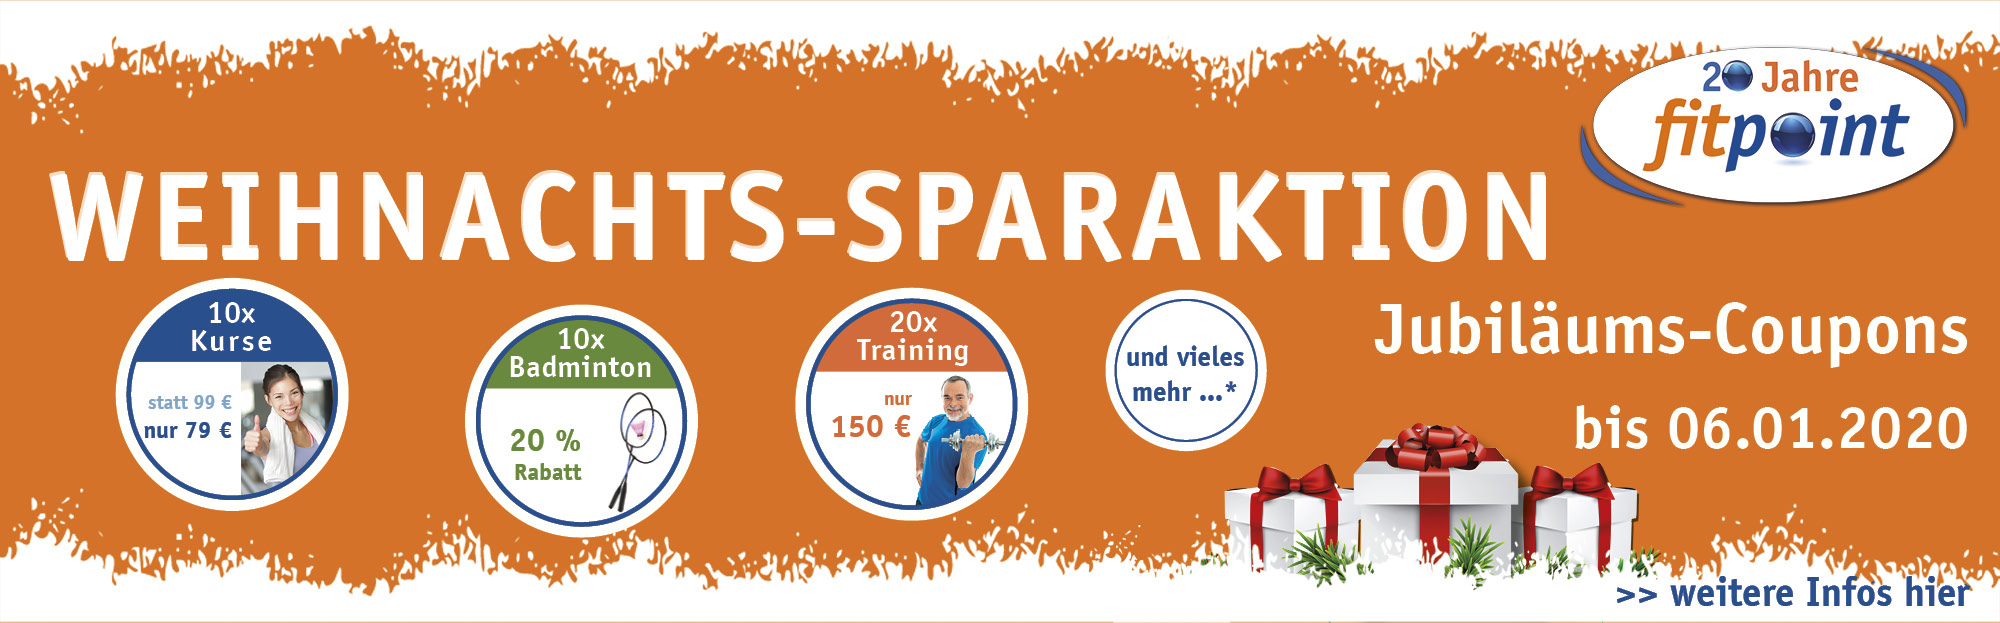 Weihnachts-Sparaktion Background